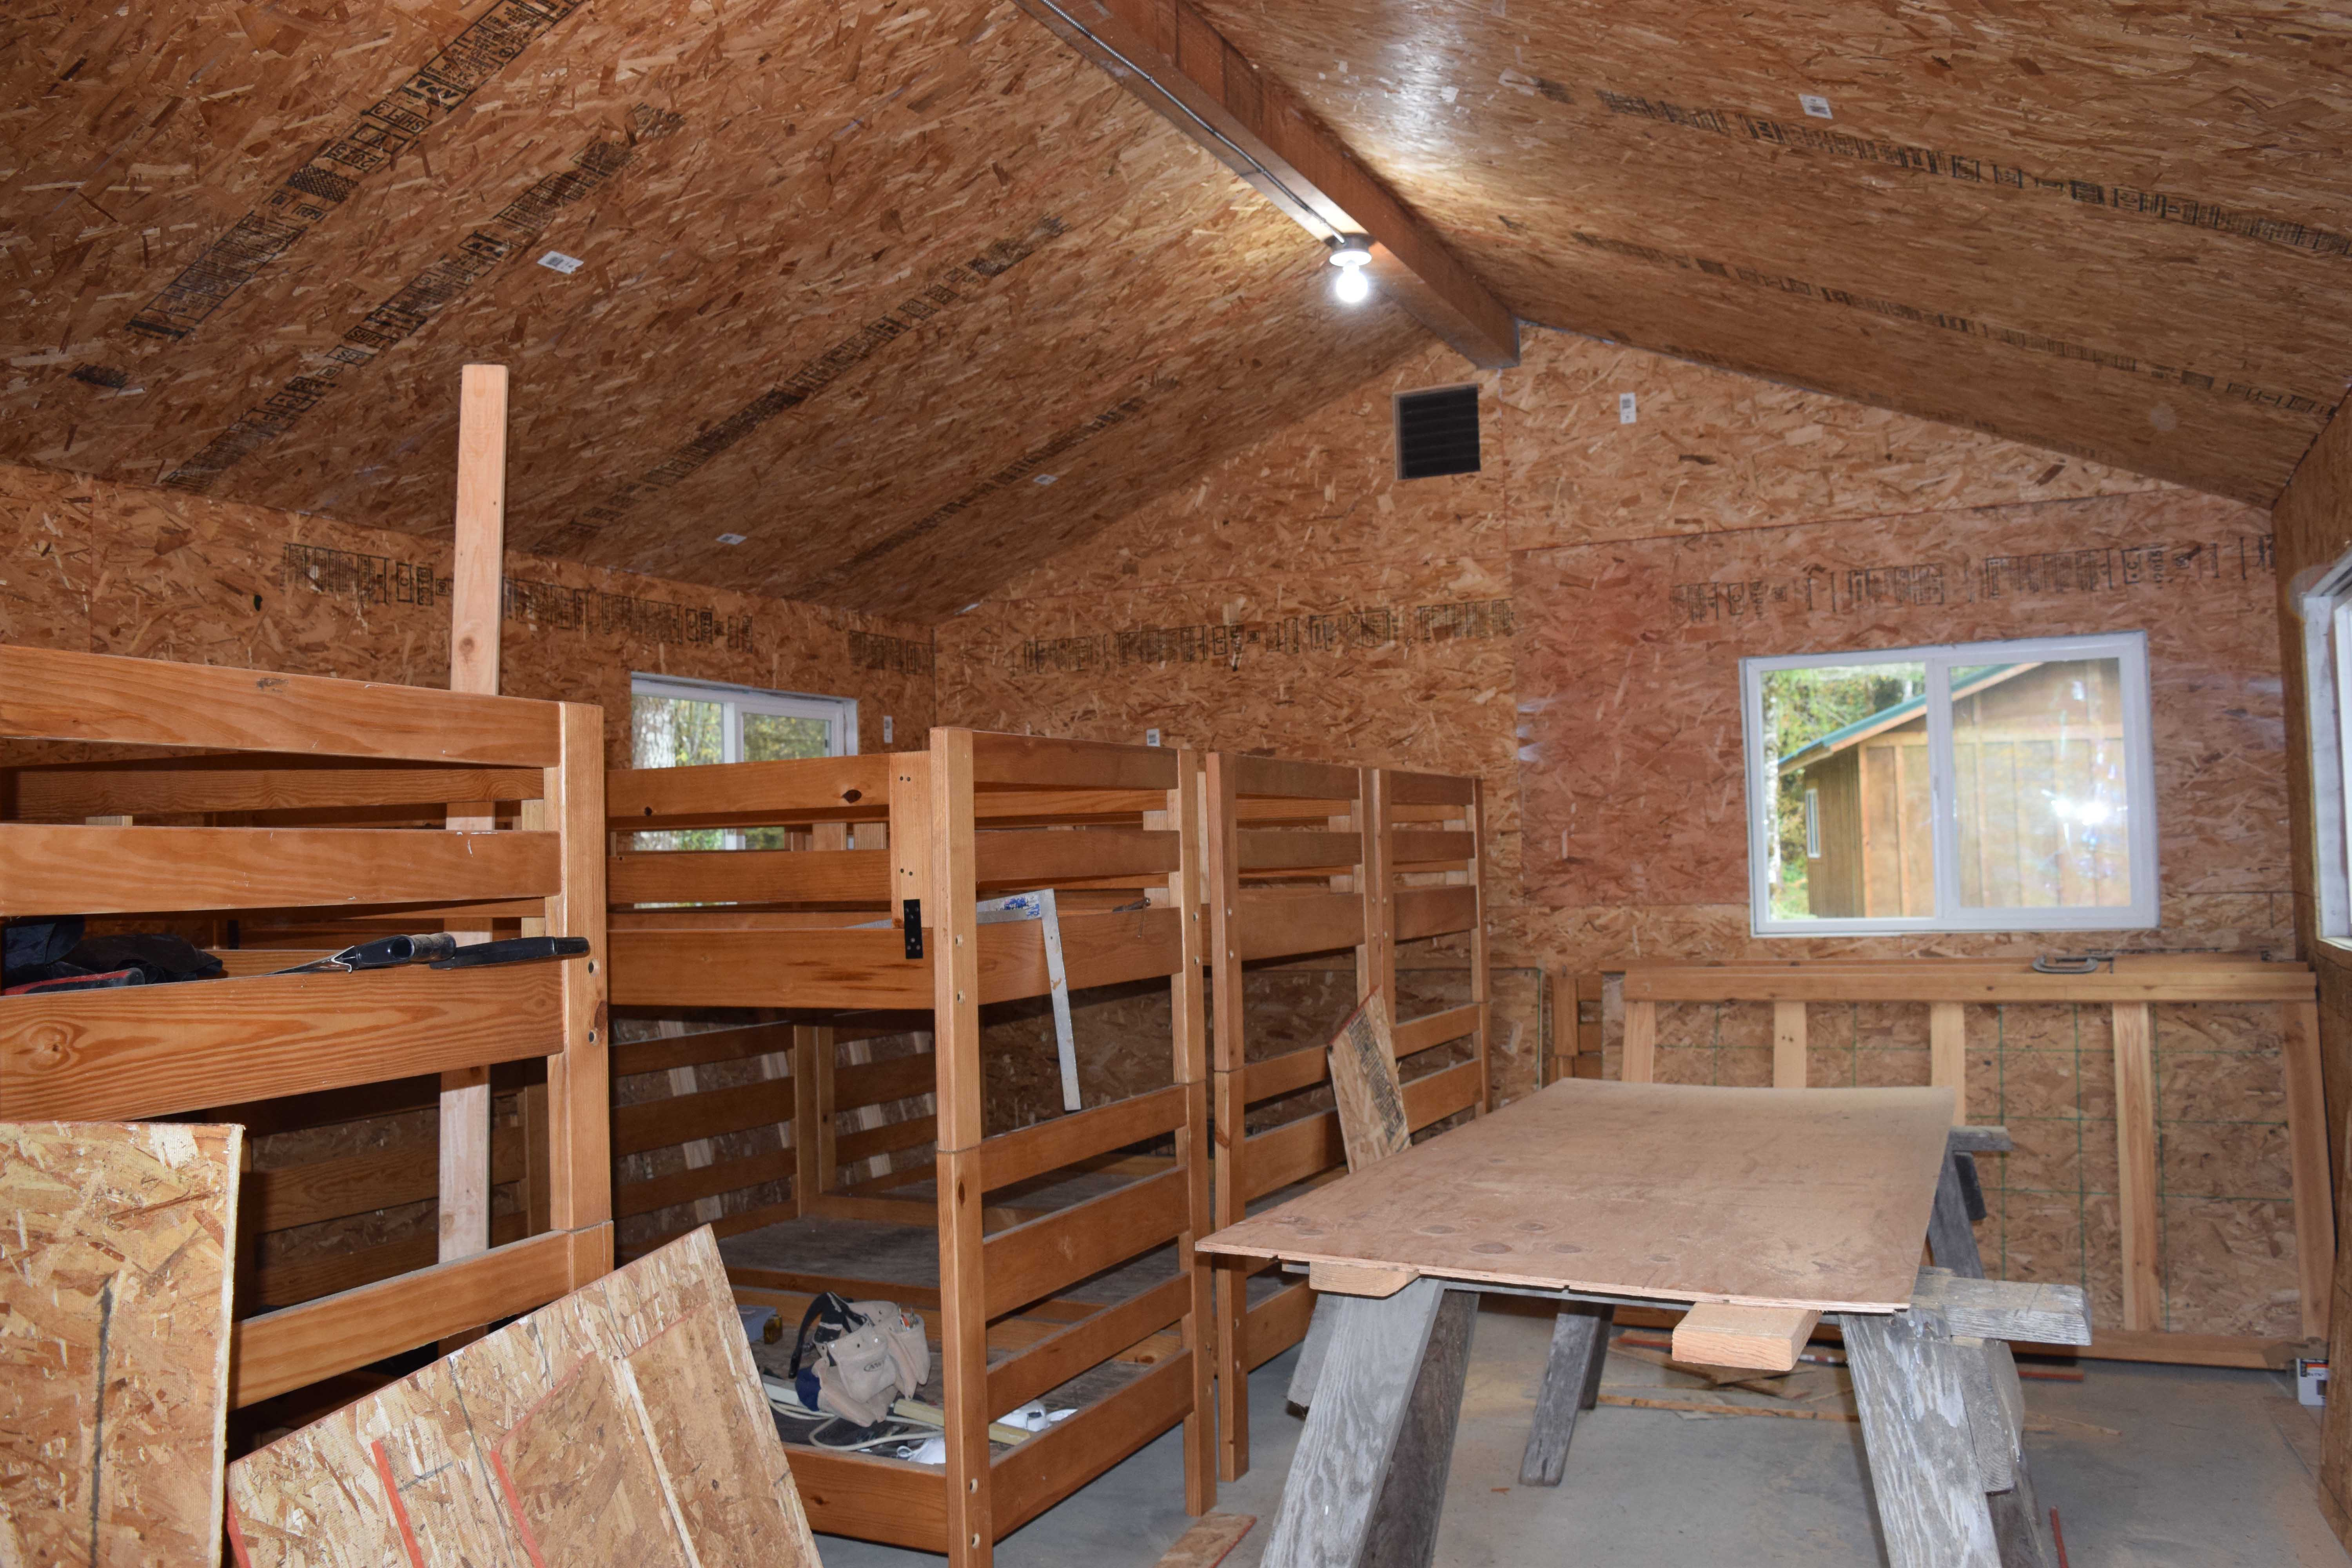 The inside of a finished (insulated and paneled) cabin became a cutting room